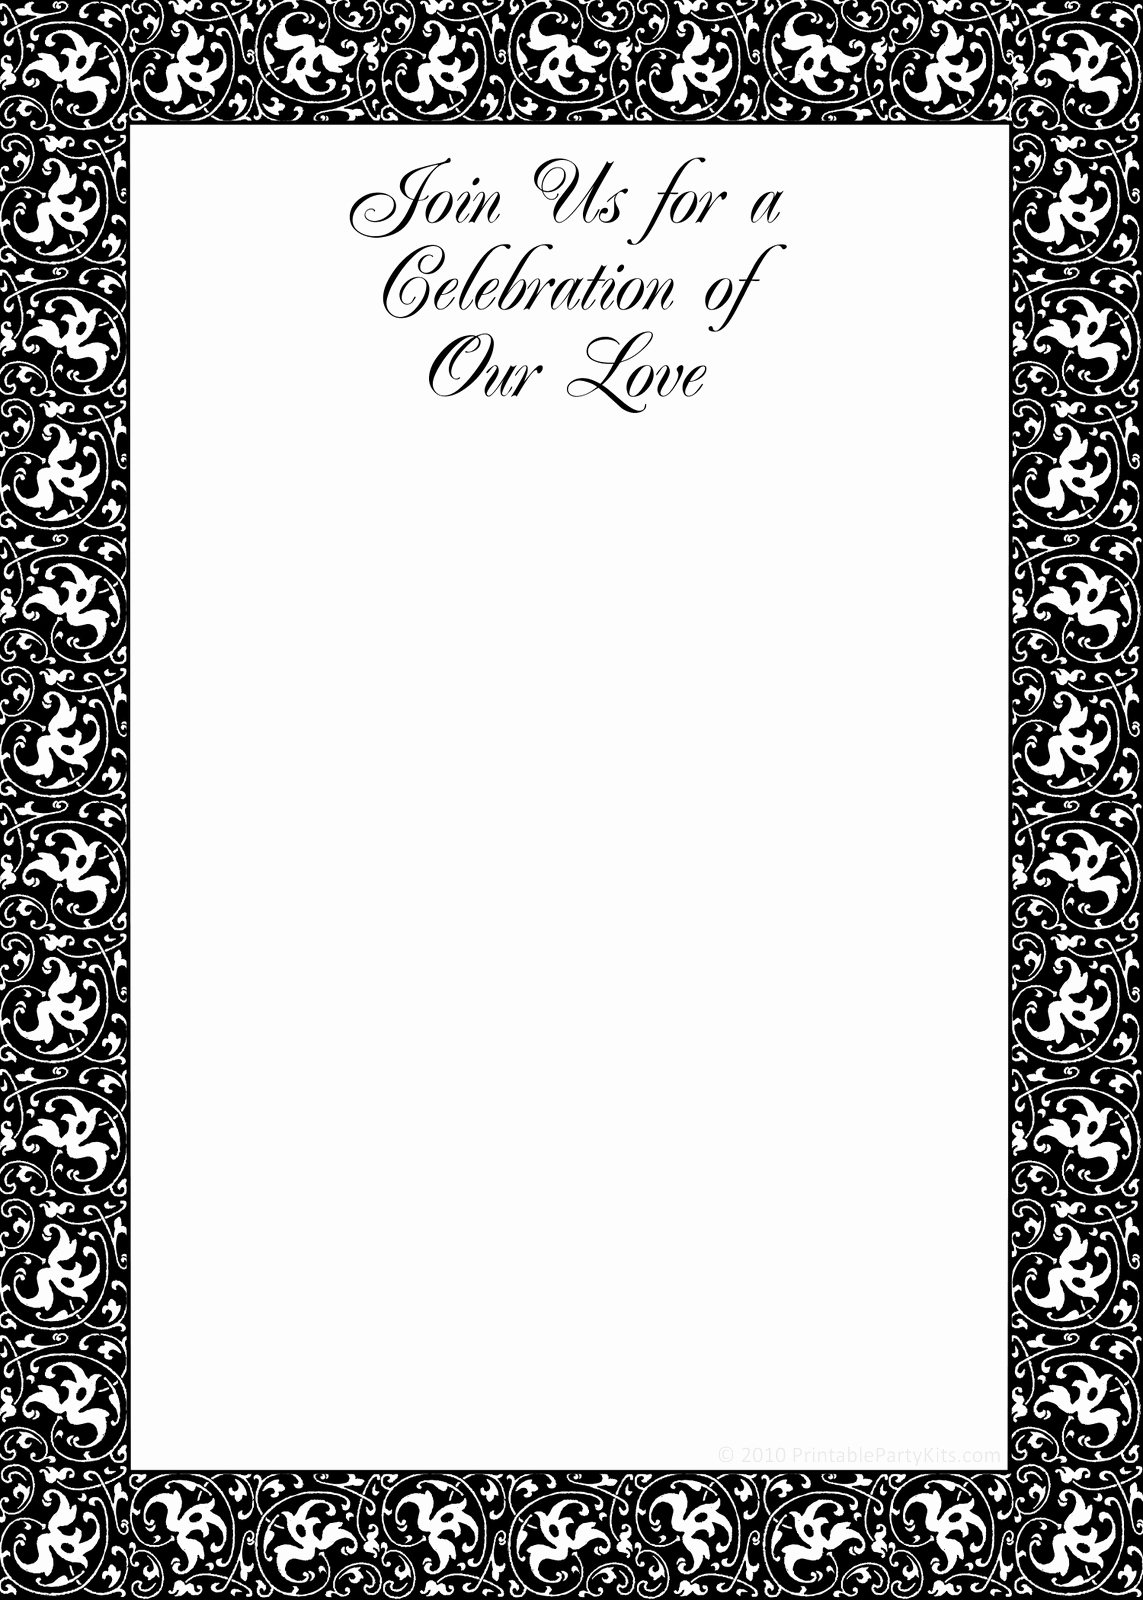 Free Printable Party Invitations Black and White Mitment Ceremony Invitation